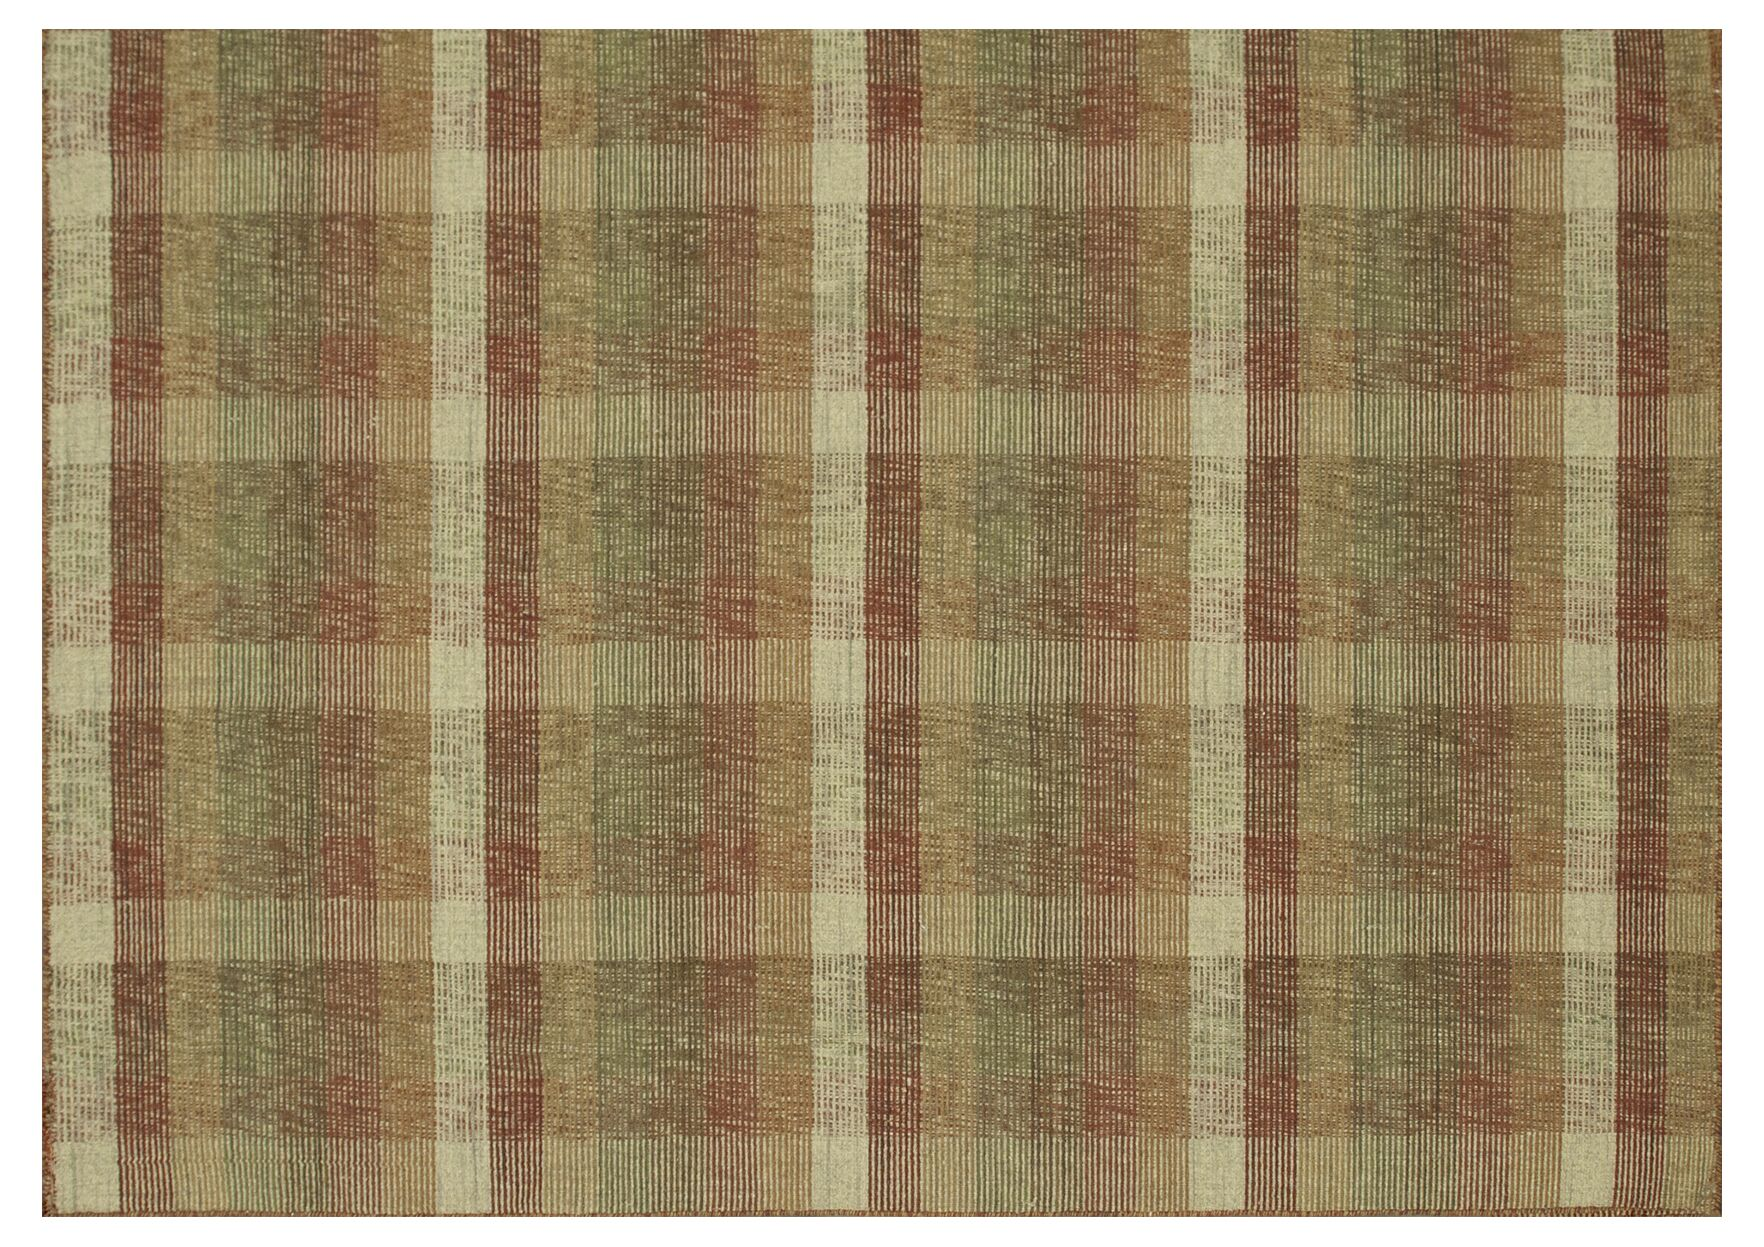 Naethe Hand-Woven Green/Red Area Rug Rug Size: Rectangle 5' x 7'6